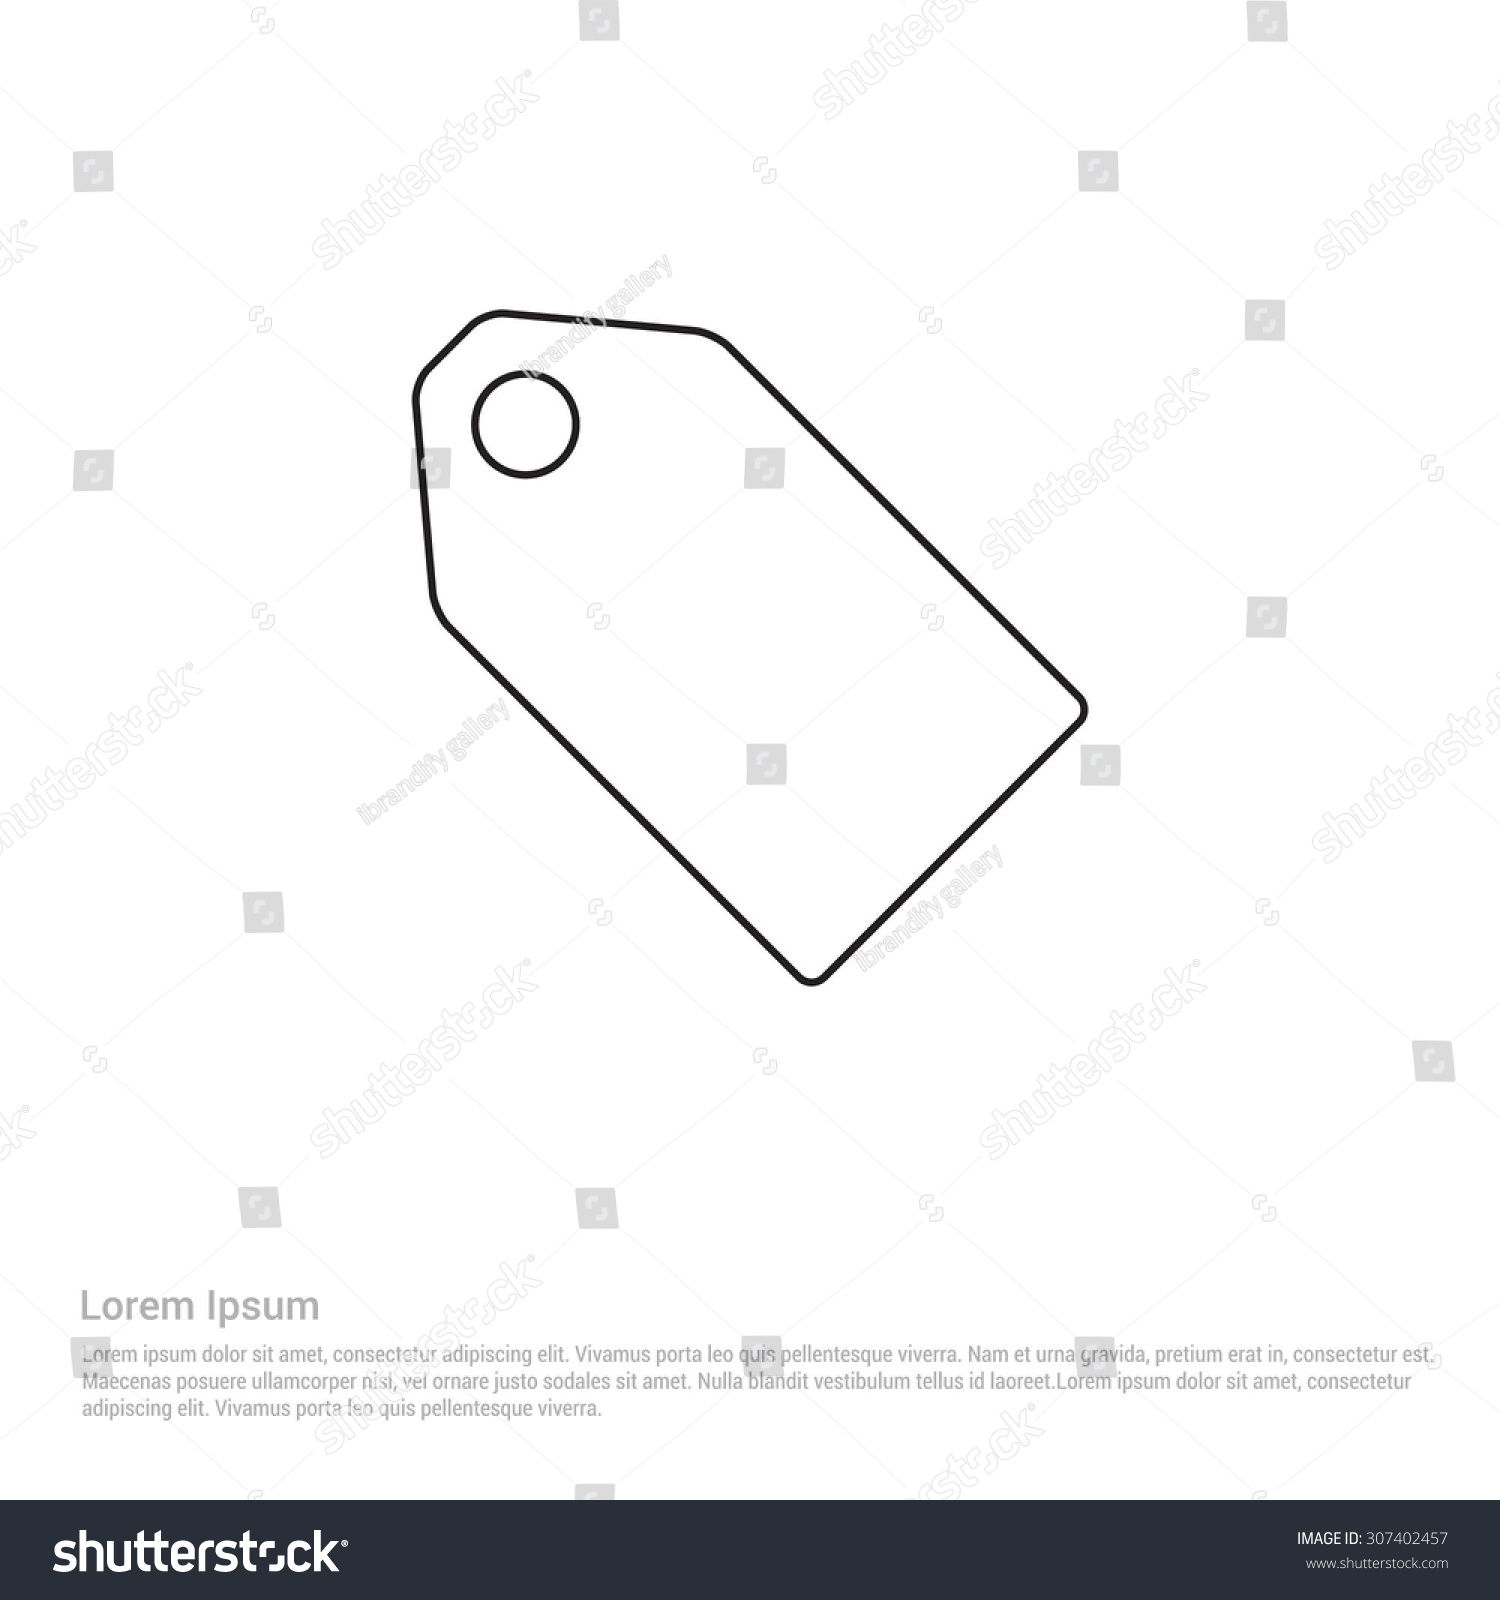 Image Gallery tag outline